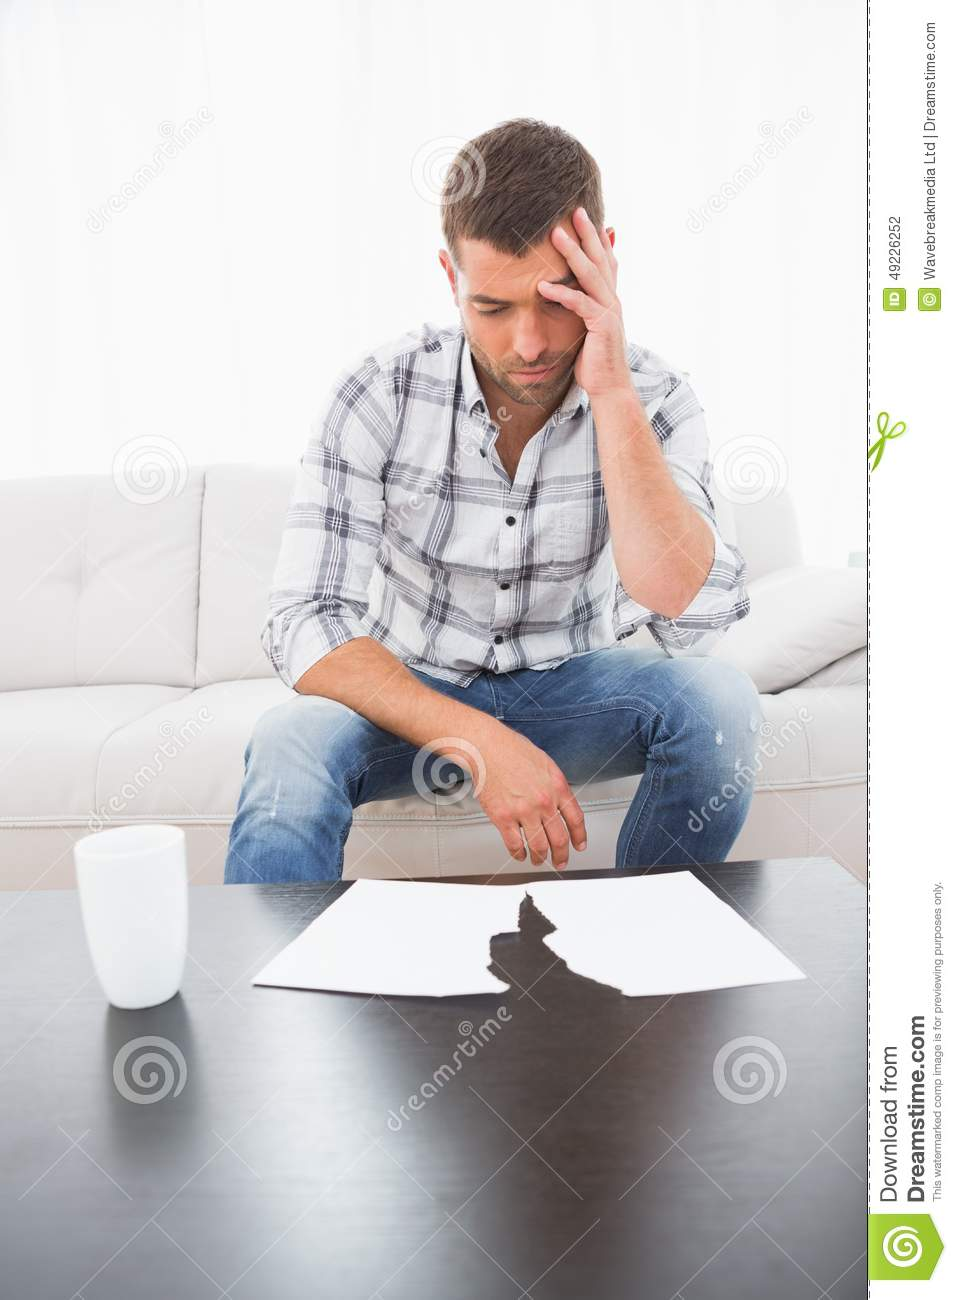 A troubled man looking papers